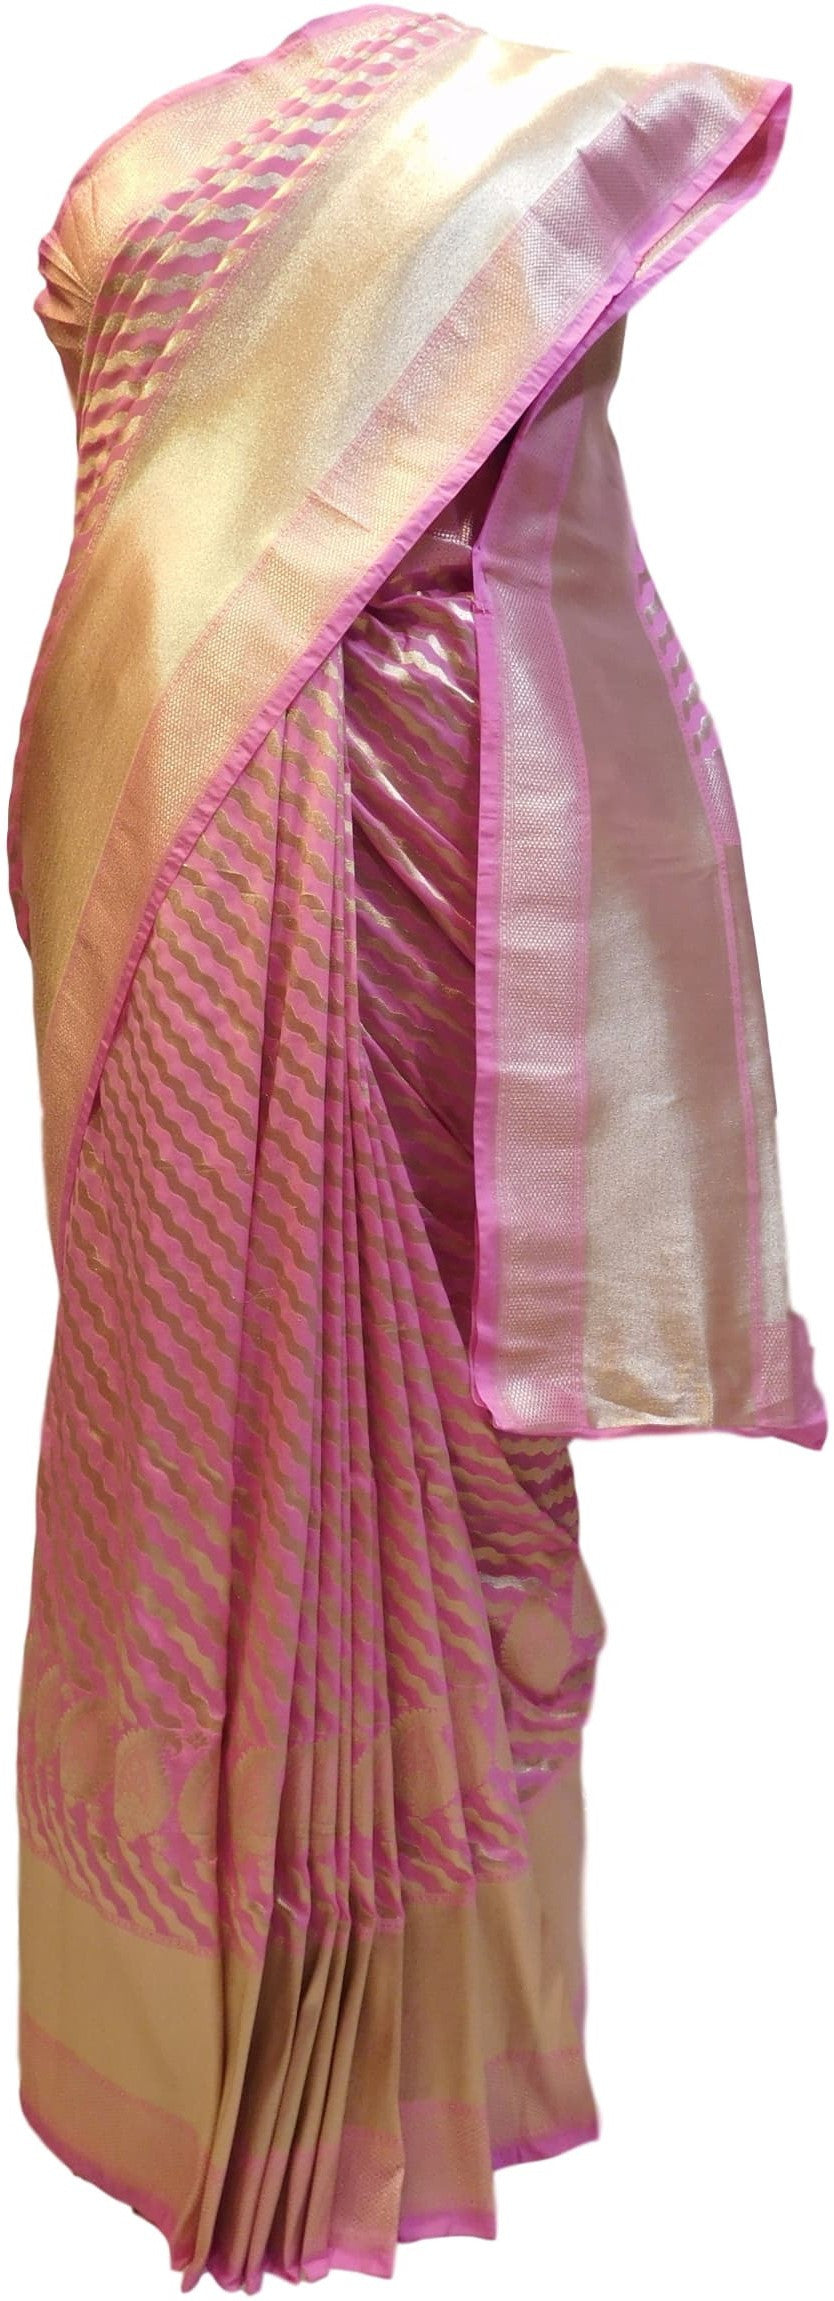 Pink Traditional Designer Bridal Hand Weaven Pure Benarasi Zari Work Saree Sari With Blouse